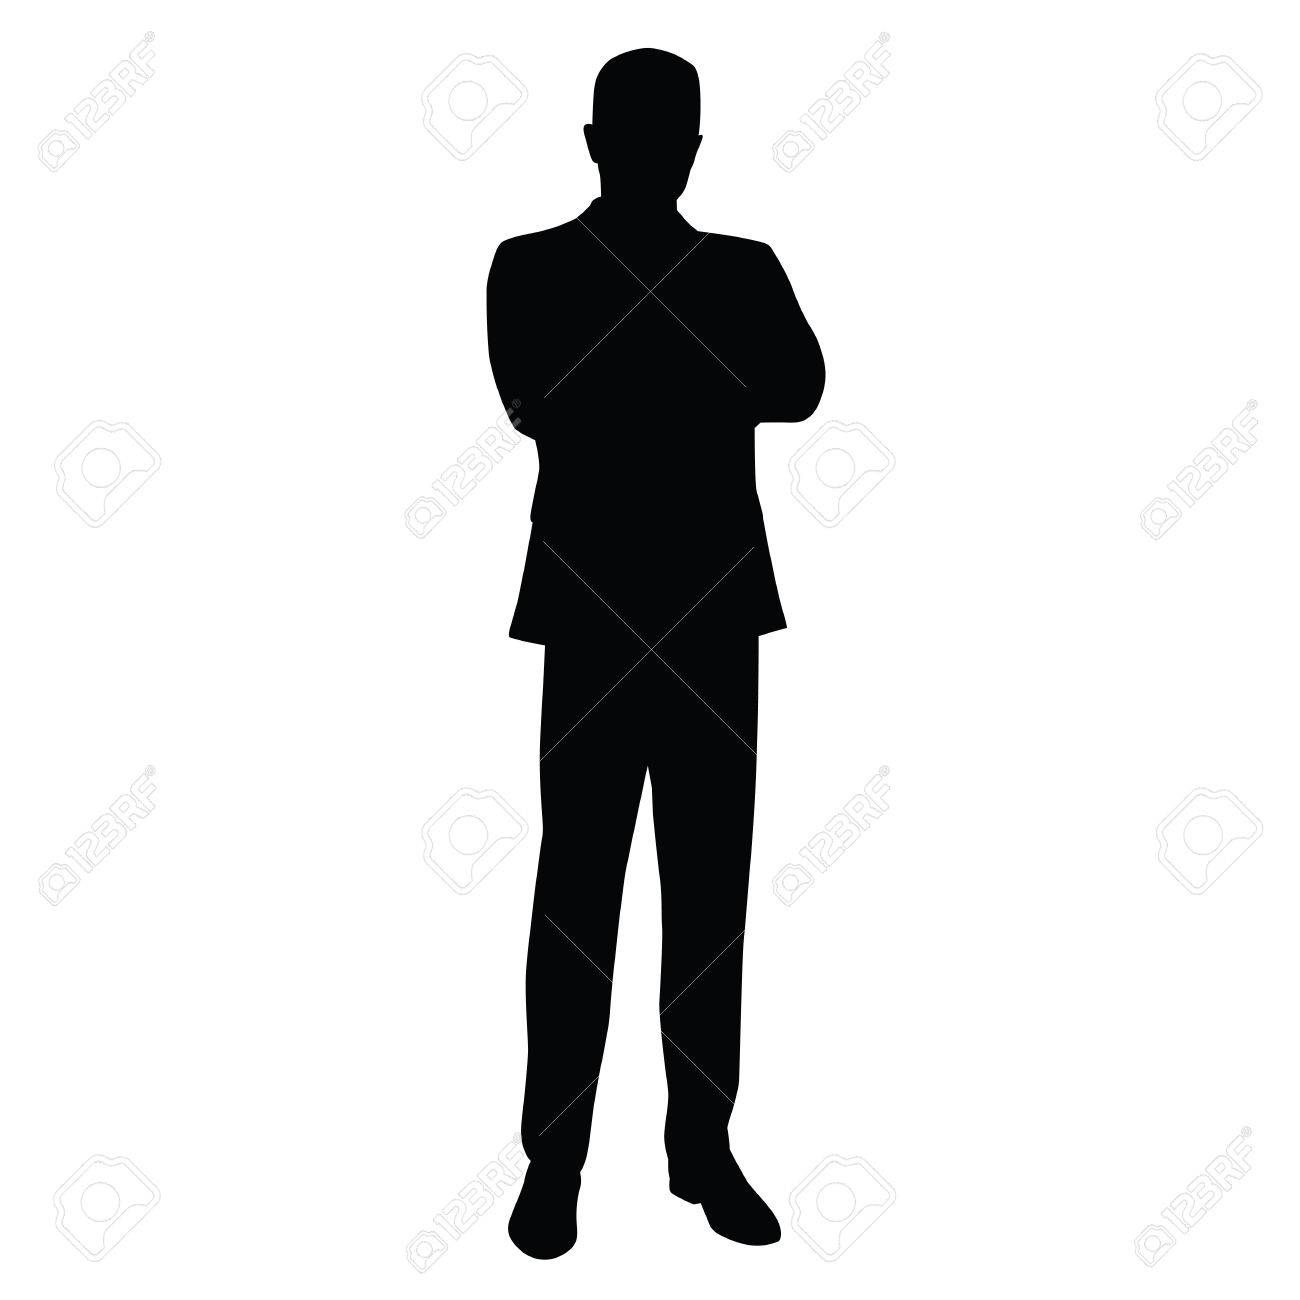 Business man in a business suit stands with his arms crossed, front view. teacher, lawyer, civil servant, businessman, entrepreneur, boss, manager. Isolated vector silhouette. - 55407900